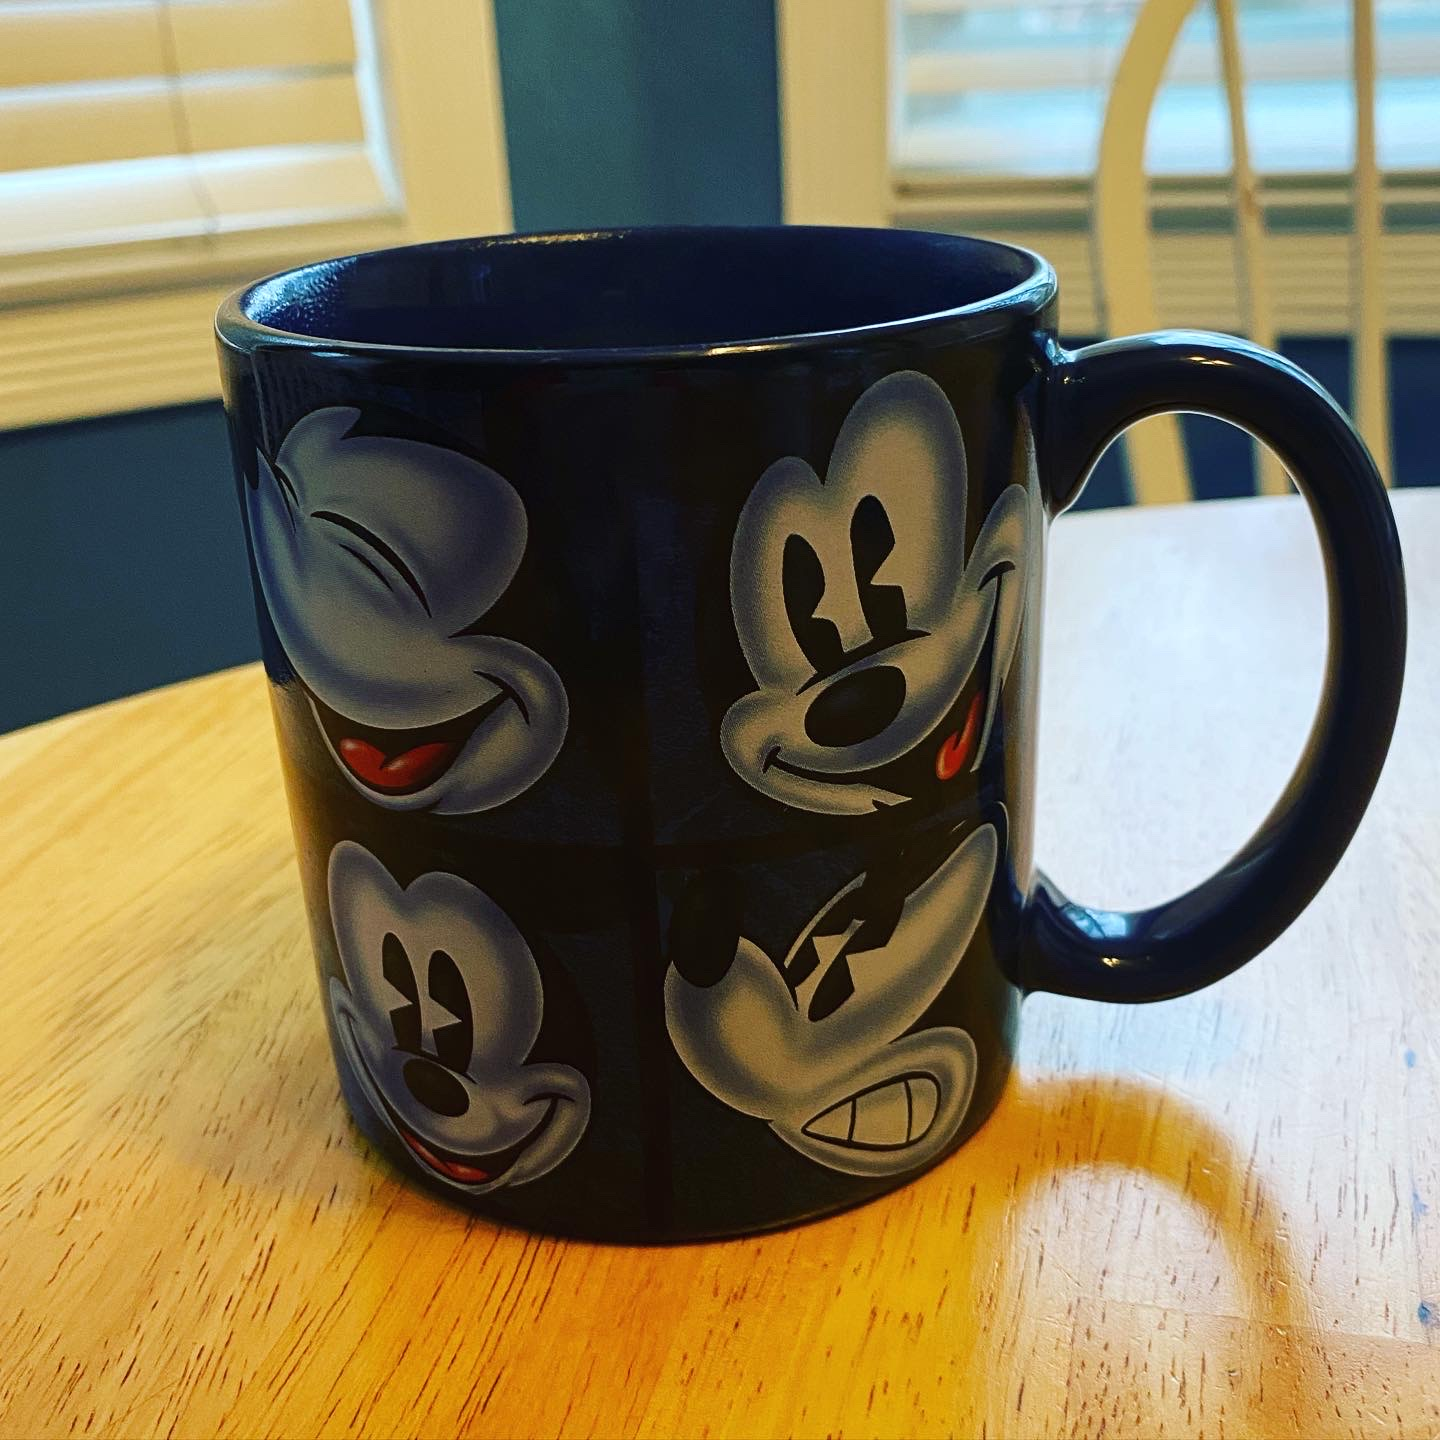 Mickey Mouse faces coffee mug photo for denise m. colby #disneymugs post